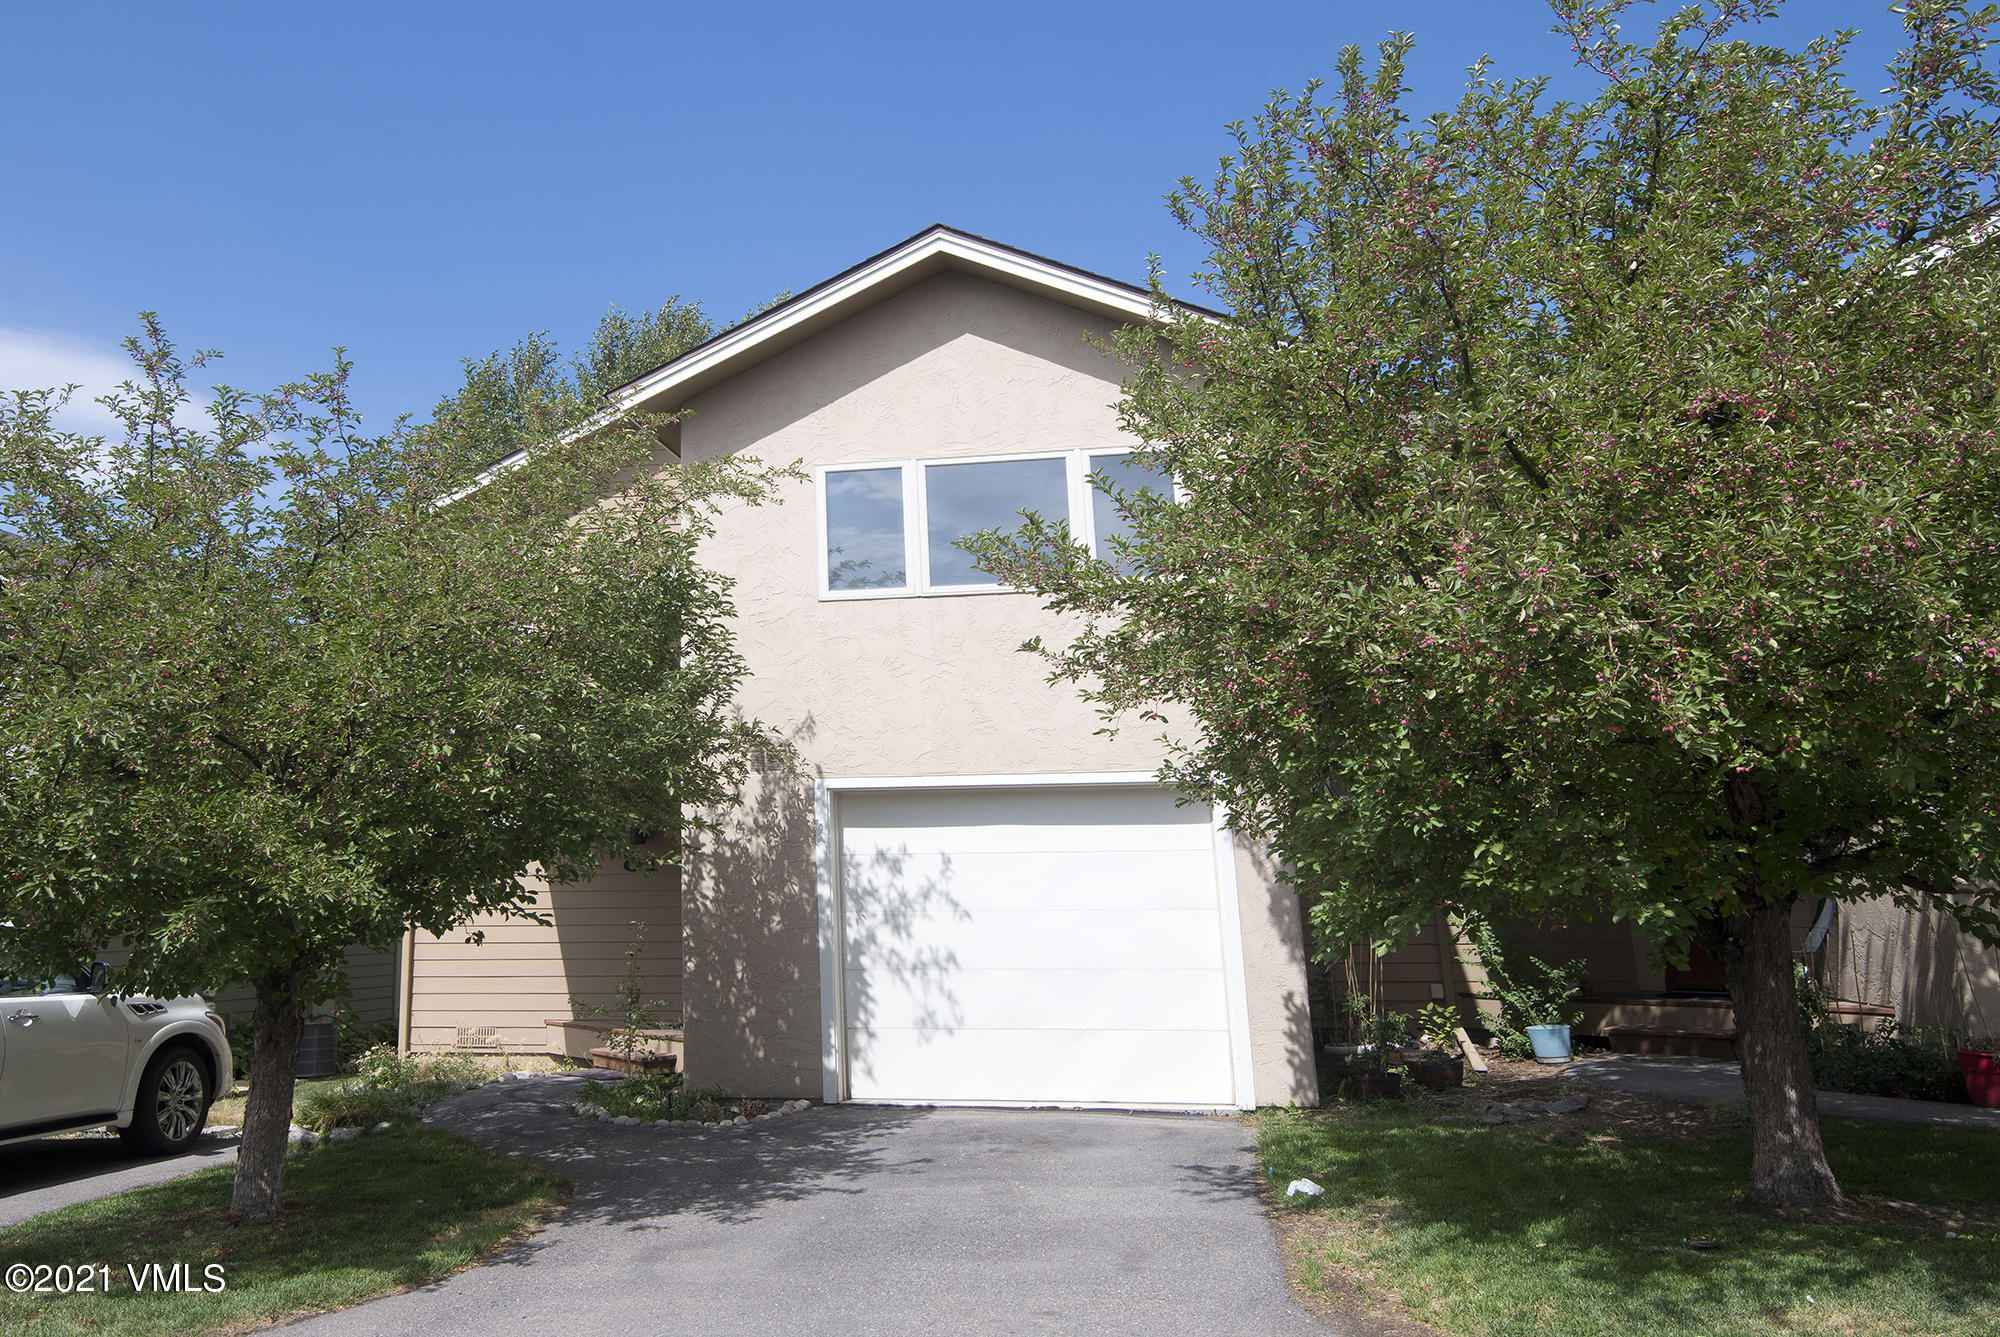 End Unit Bluffs Town home with 3 bedrooms, 2.5 baths.  Features include hardwood floors, black appliances in the kitchen and a 1 car garage. Needs interior paint.  Walking distance to Town and schools.  Access to open space and hiking/bike paths are a block away.